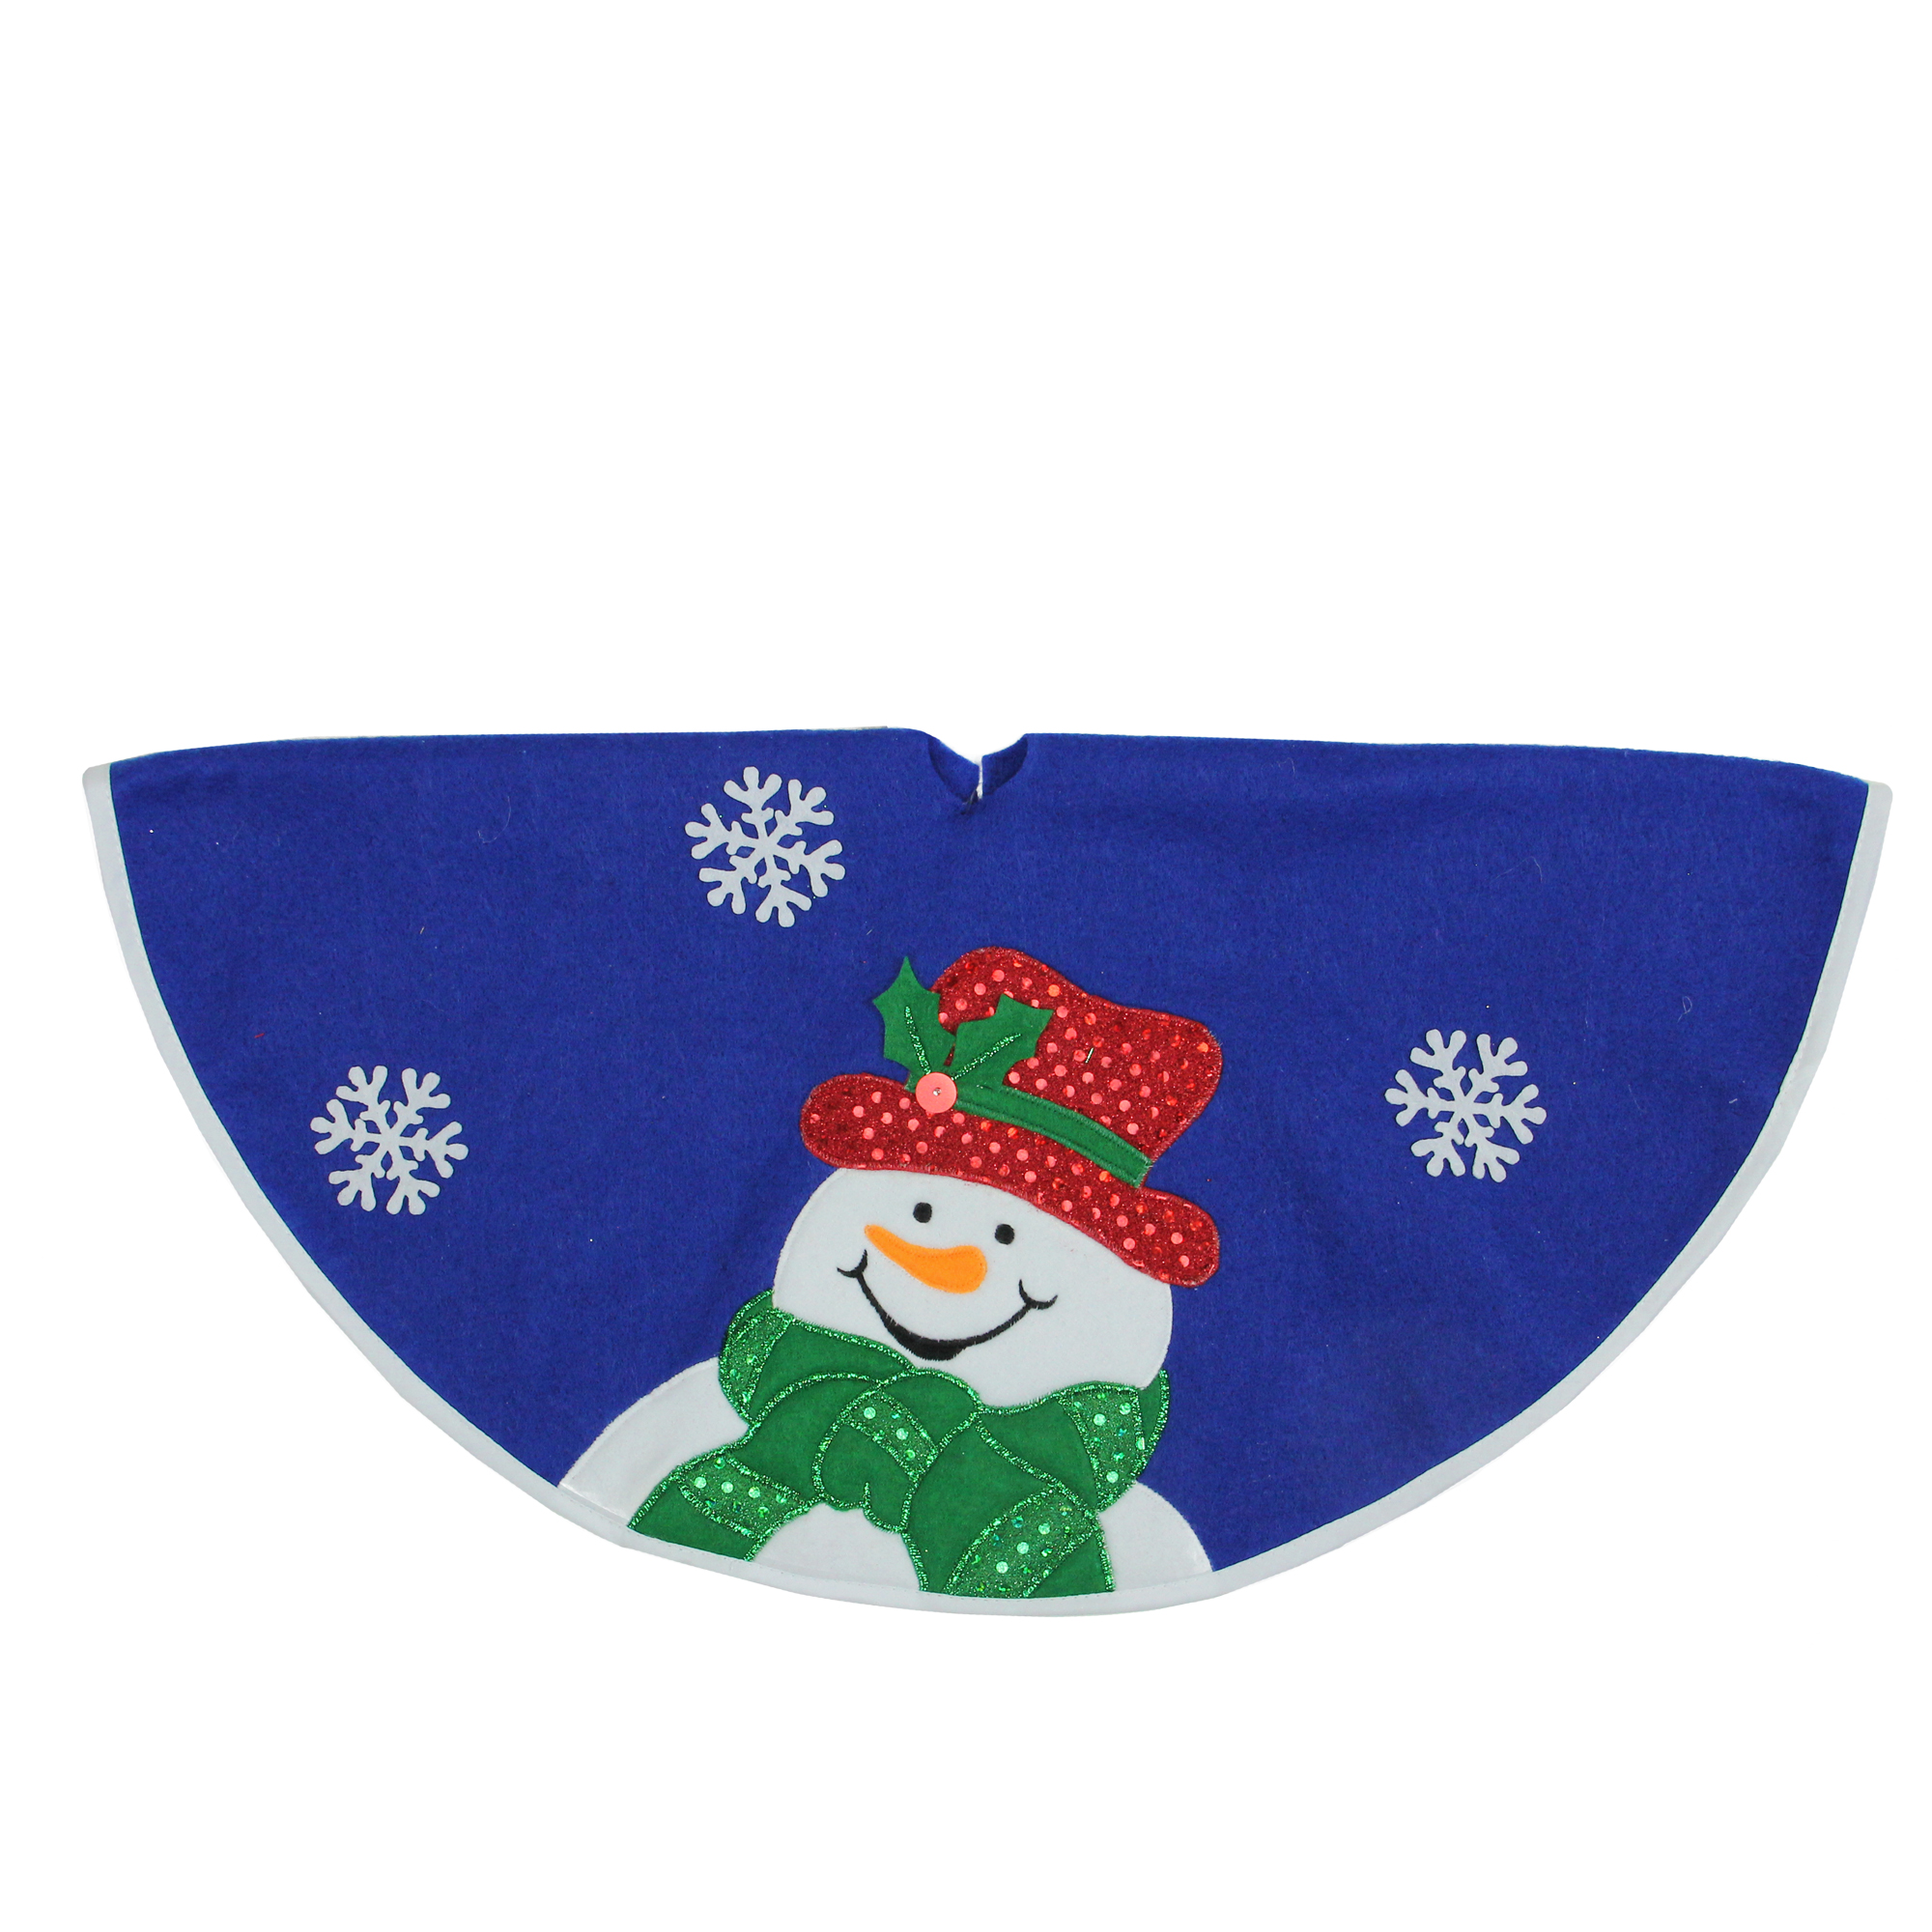 "20"" Blue and White Embroidered Snowman Mini Christmas Tree Skirt"